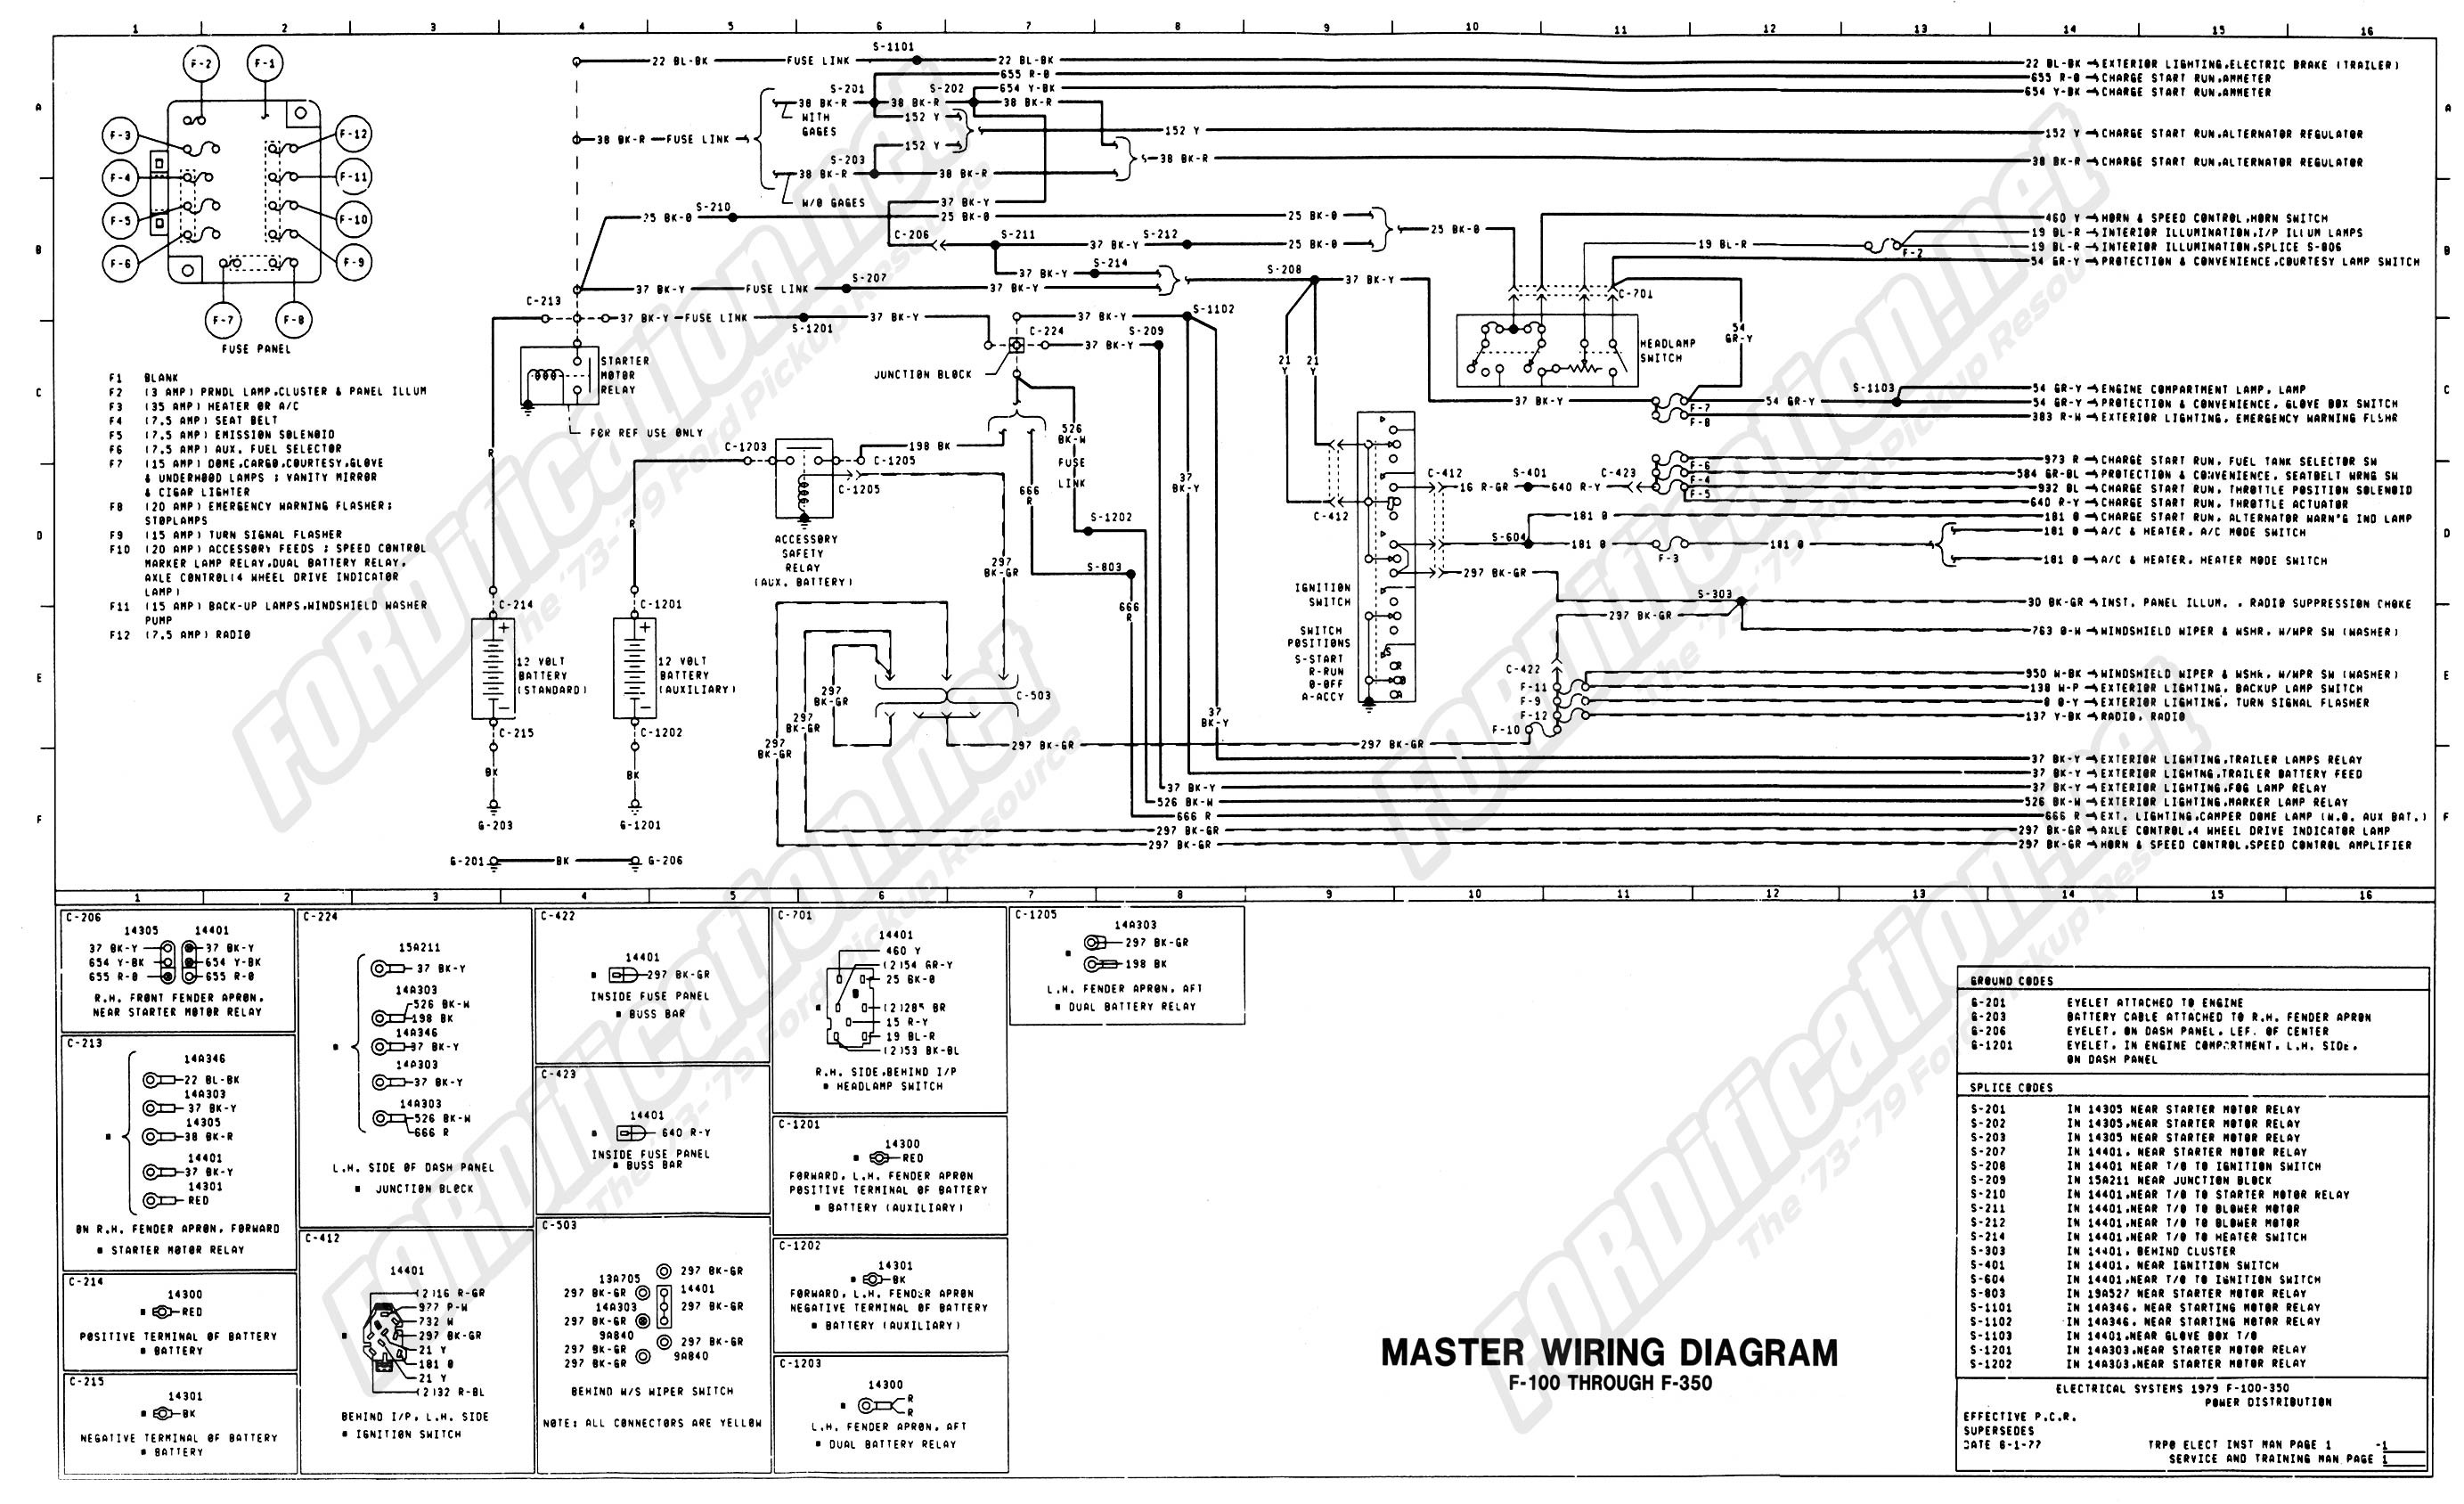 2001 ford Explorer Sport Engine Diagram F150 Wiring Harness Further 1970  ford torino Ignition Wiring Diagram